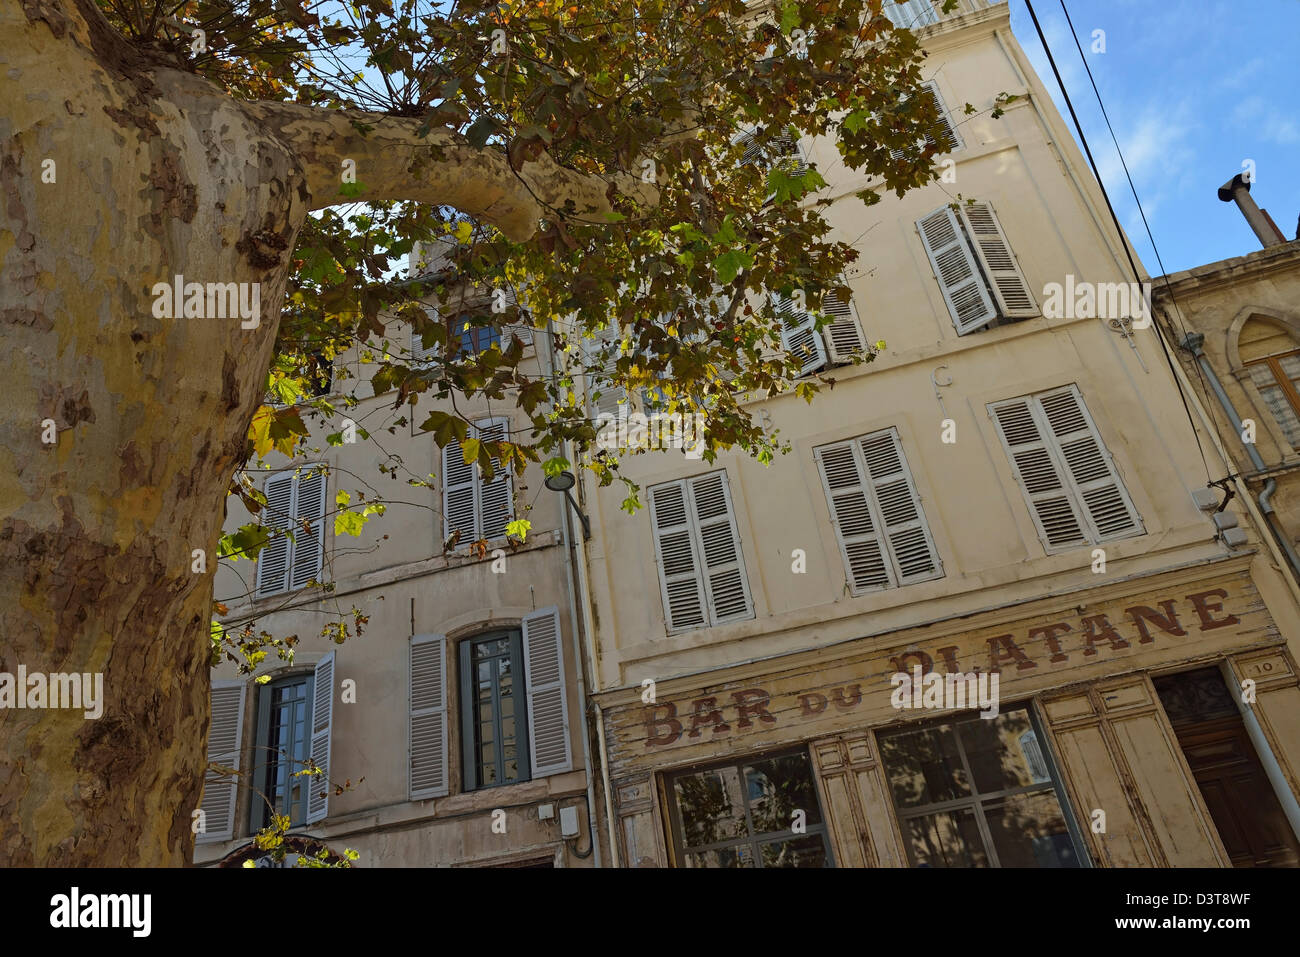 Old-fashioned French cafe / bar facade in Panier district, Marseille, France - Stock Image